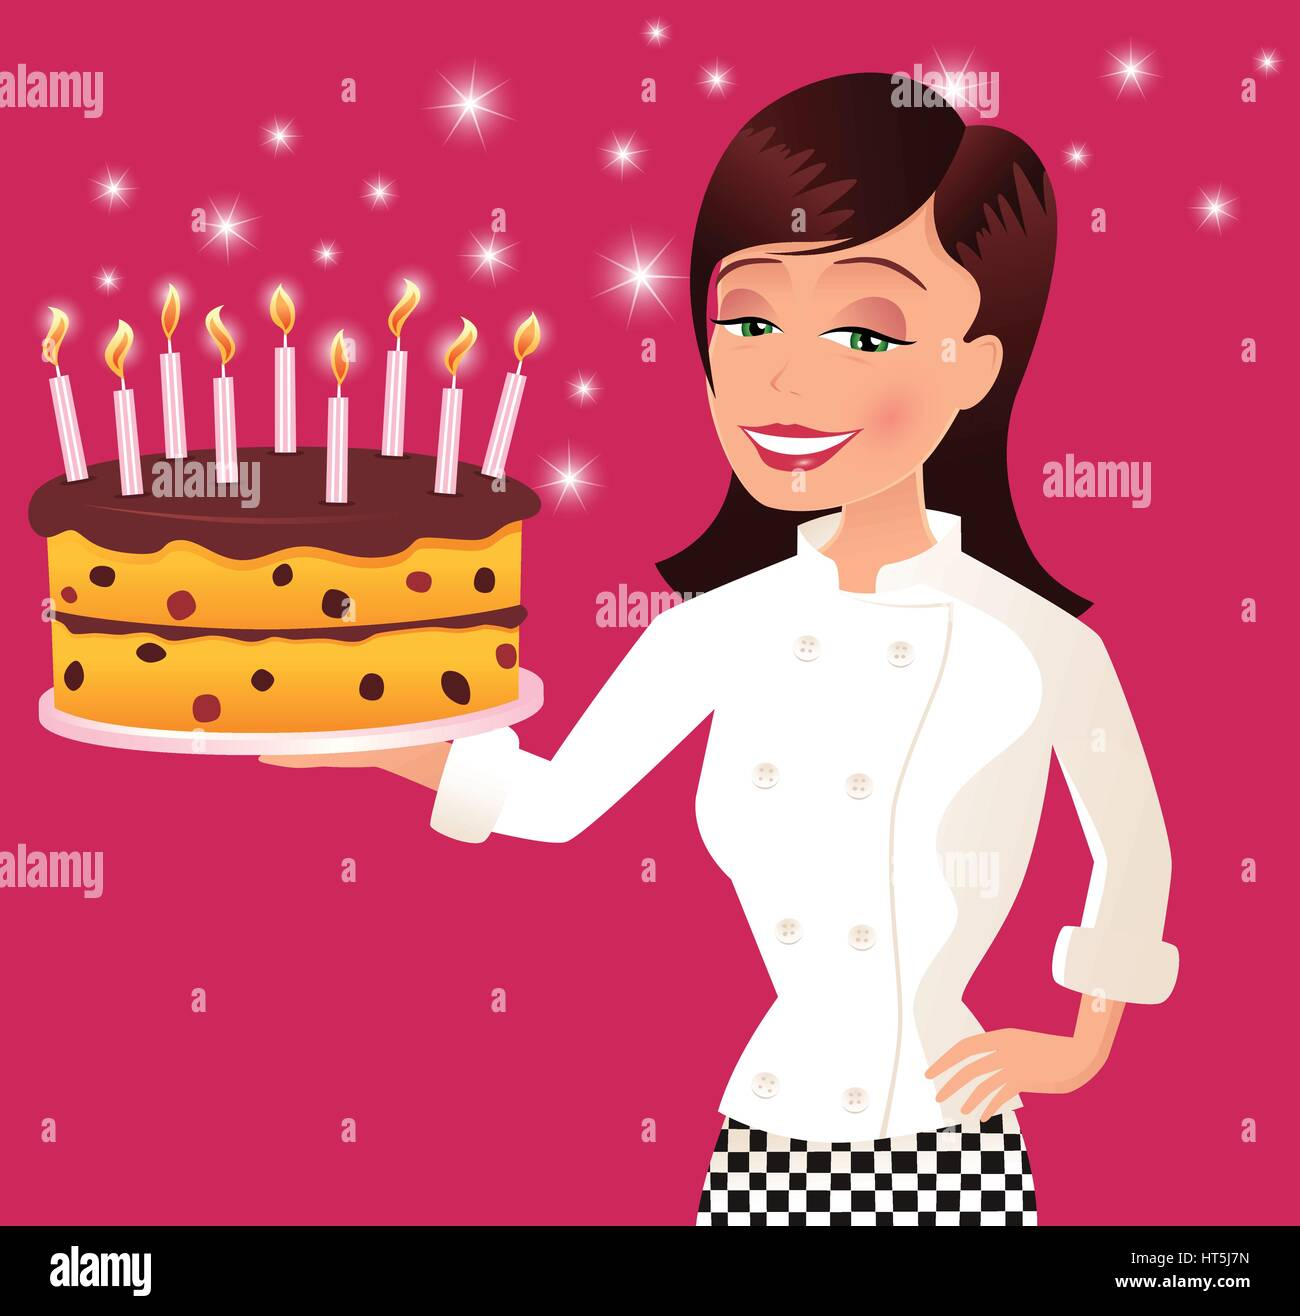 An image of a young female chef presenting a birthday cake. - Stock Vector